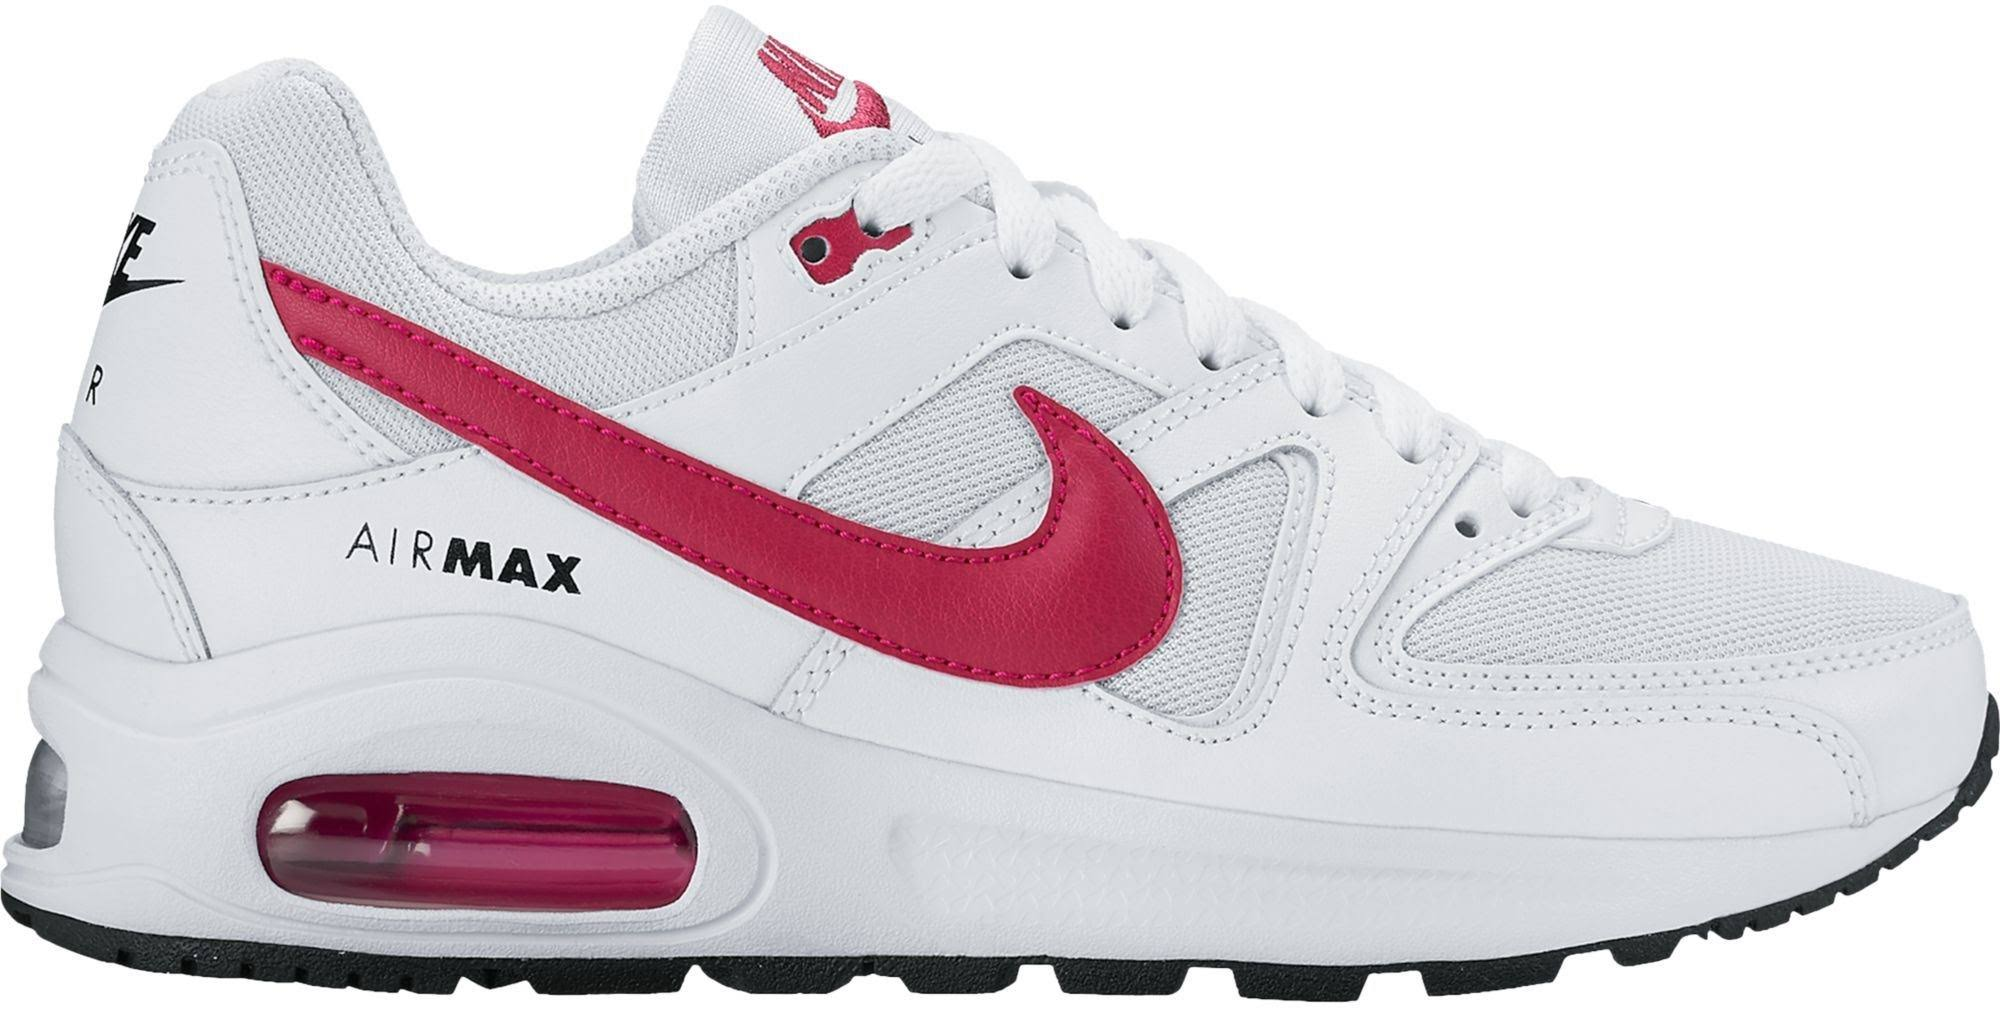 Command Max Flex 101 Ayakkabi gs Spor Nike Air 844349 37½ gS7wnqx5H5